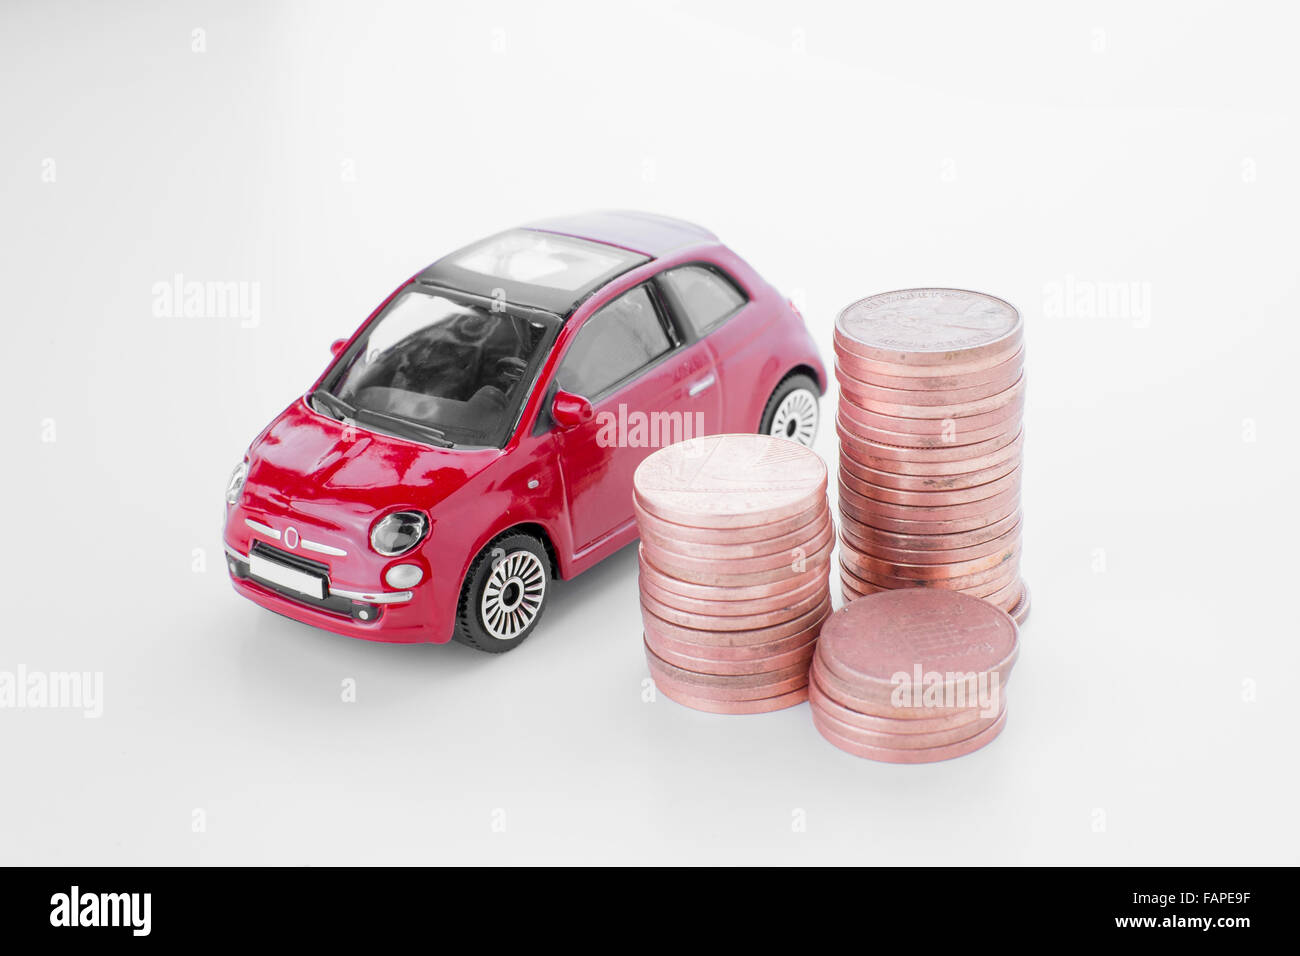 Car insurance. - Stock Image